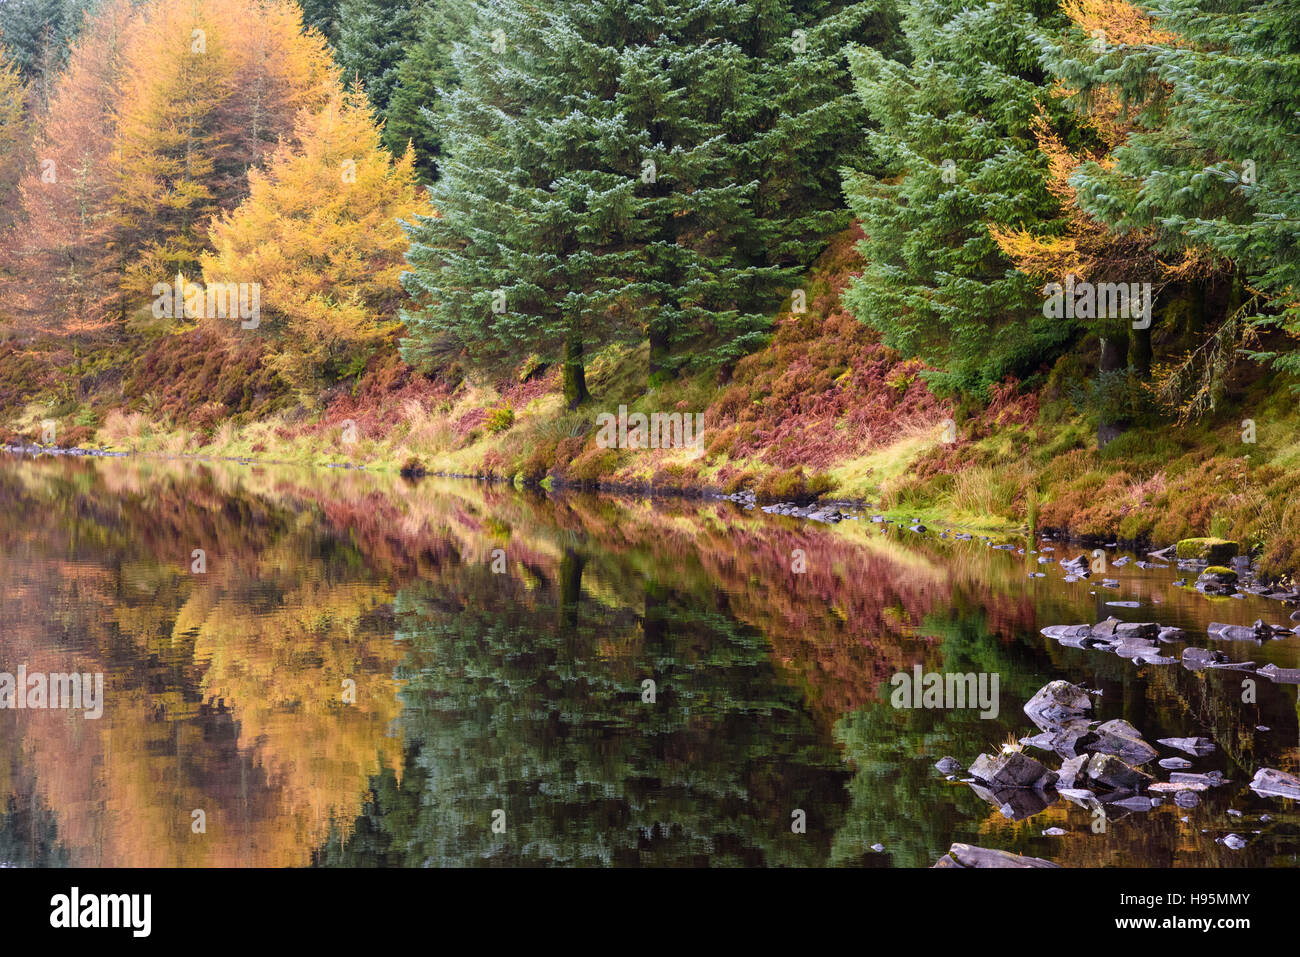 Loch Garbad, near Kildonan, Isle of Arran, North Ayrshire, Scotland - Stock Image